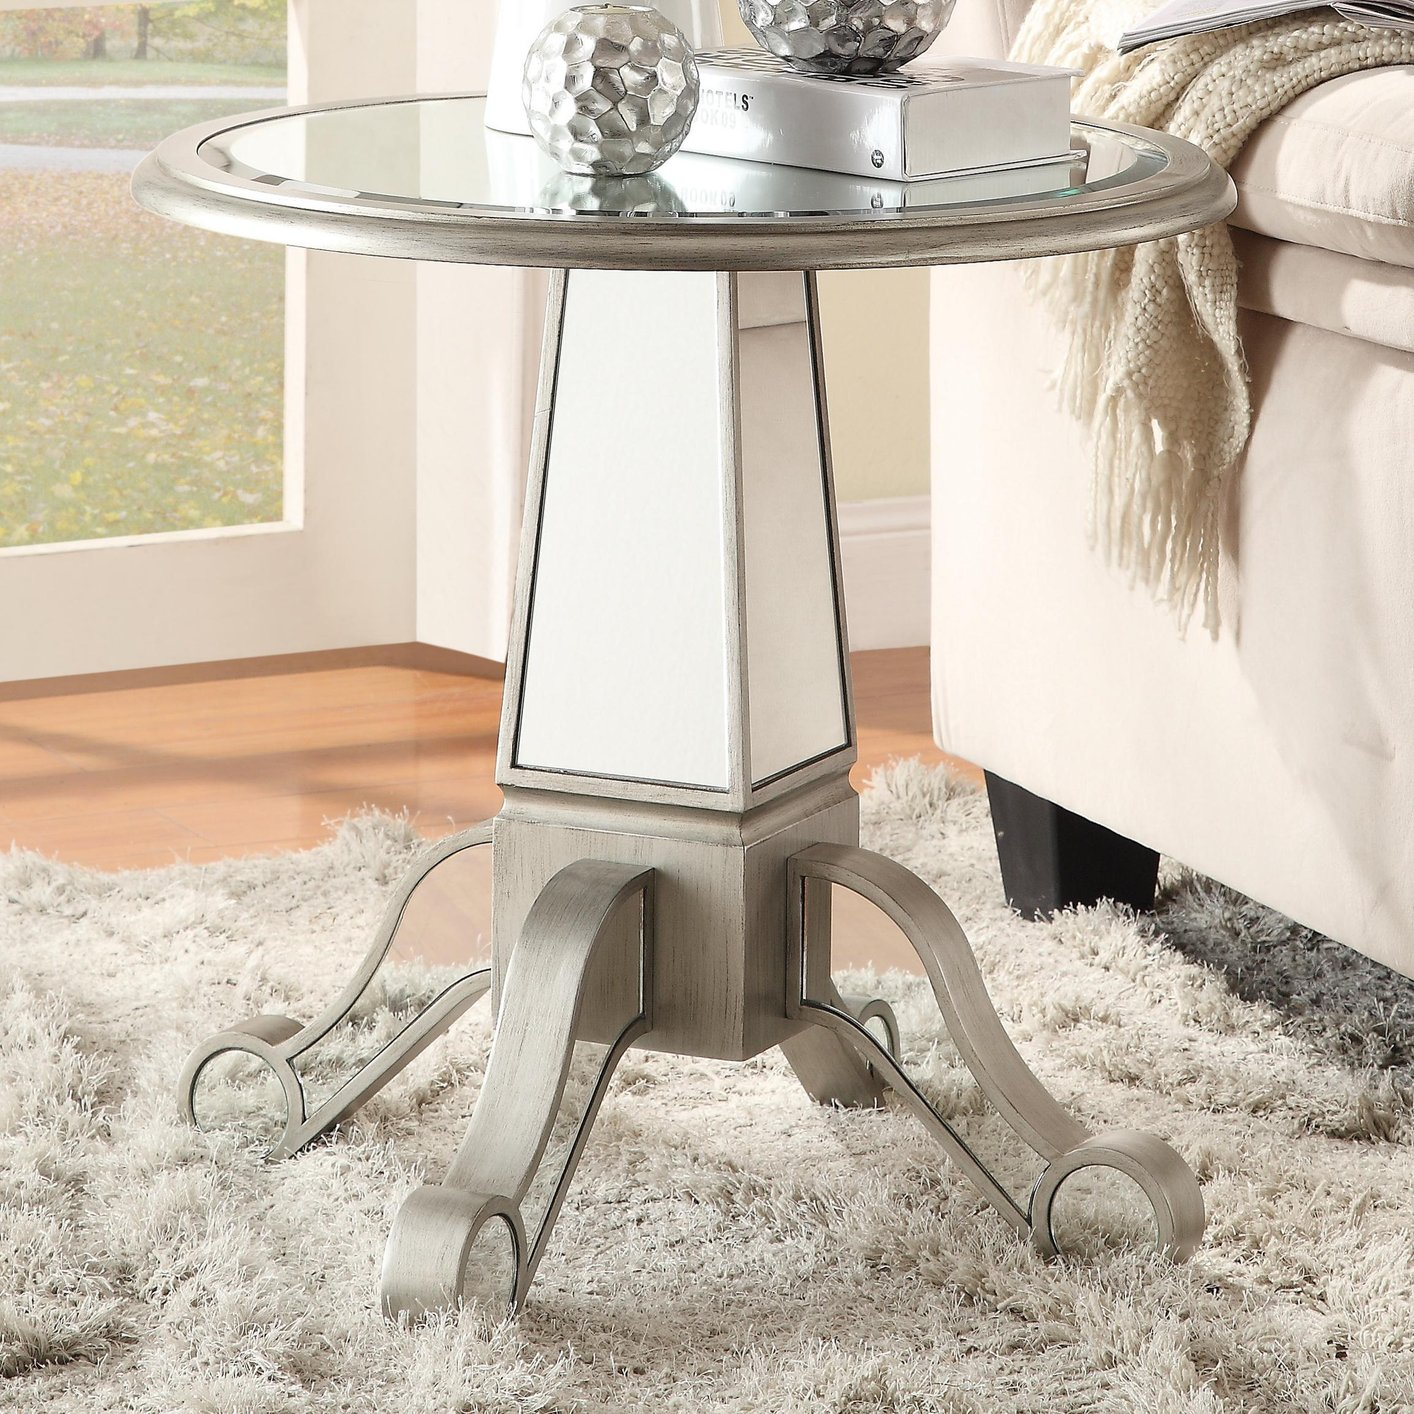 silver metal accent table steal sofa furniture los angeles glass pedestal white barn modern black end farmhouse style dining and chairs console cabinet outdoor stacking tables